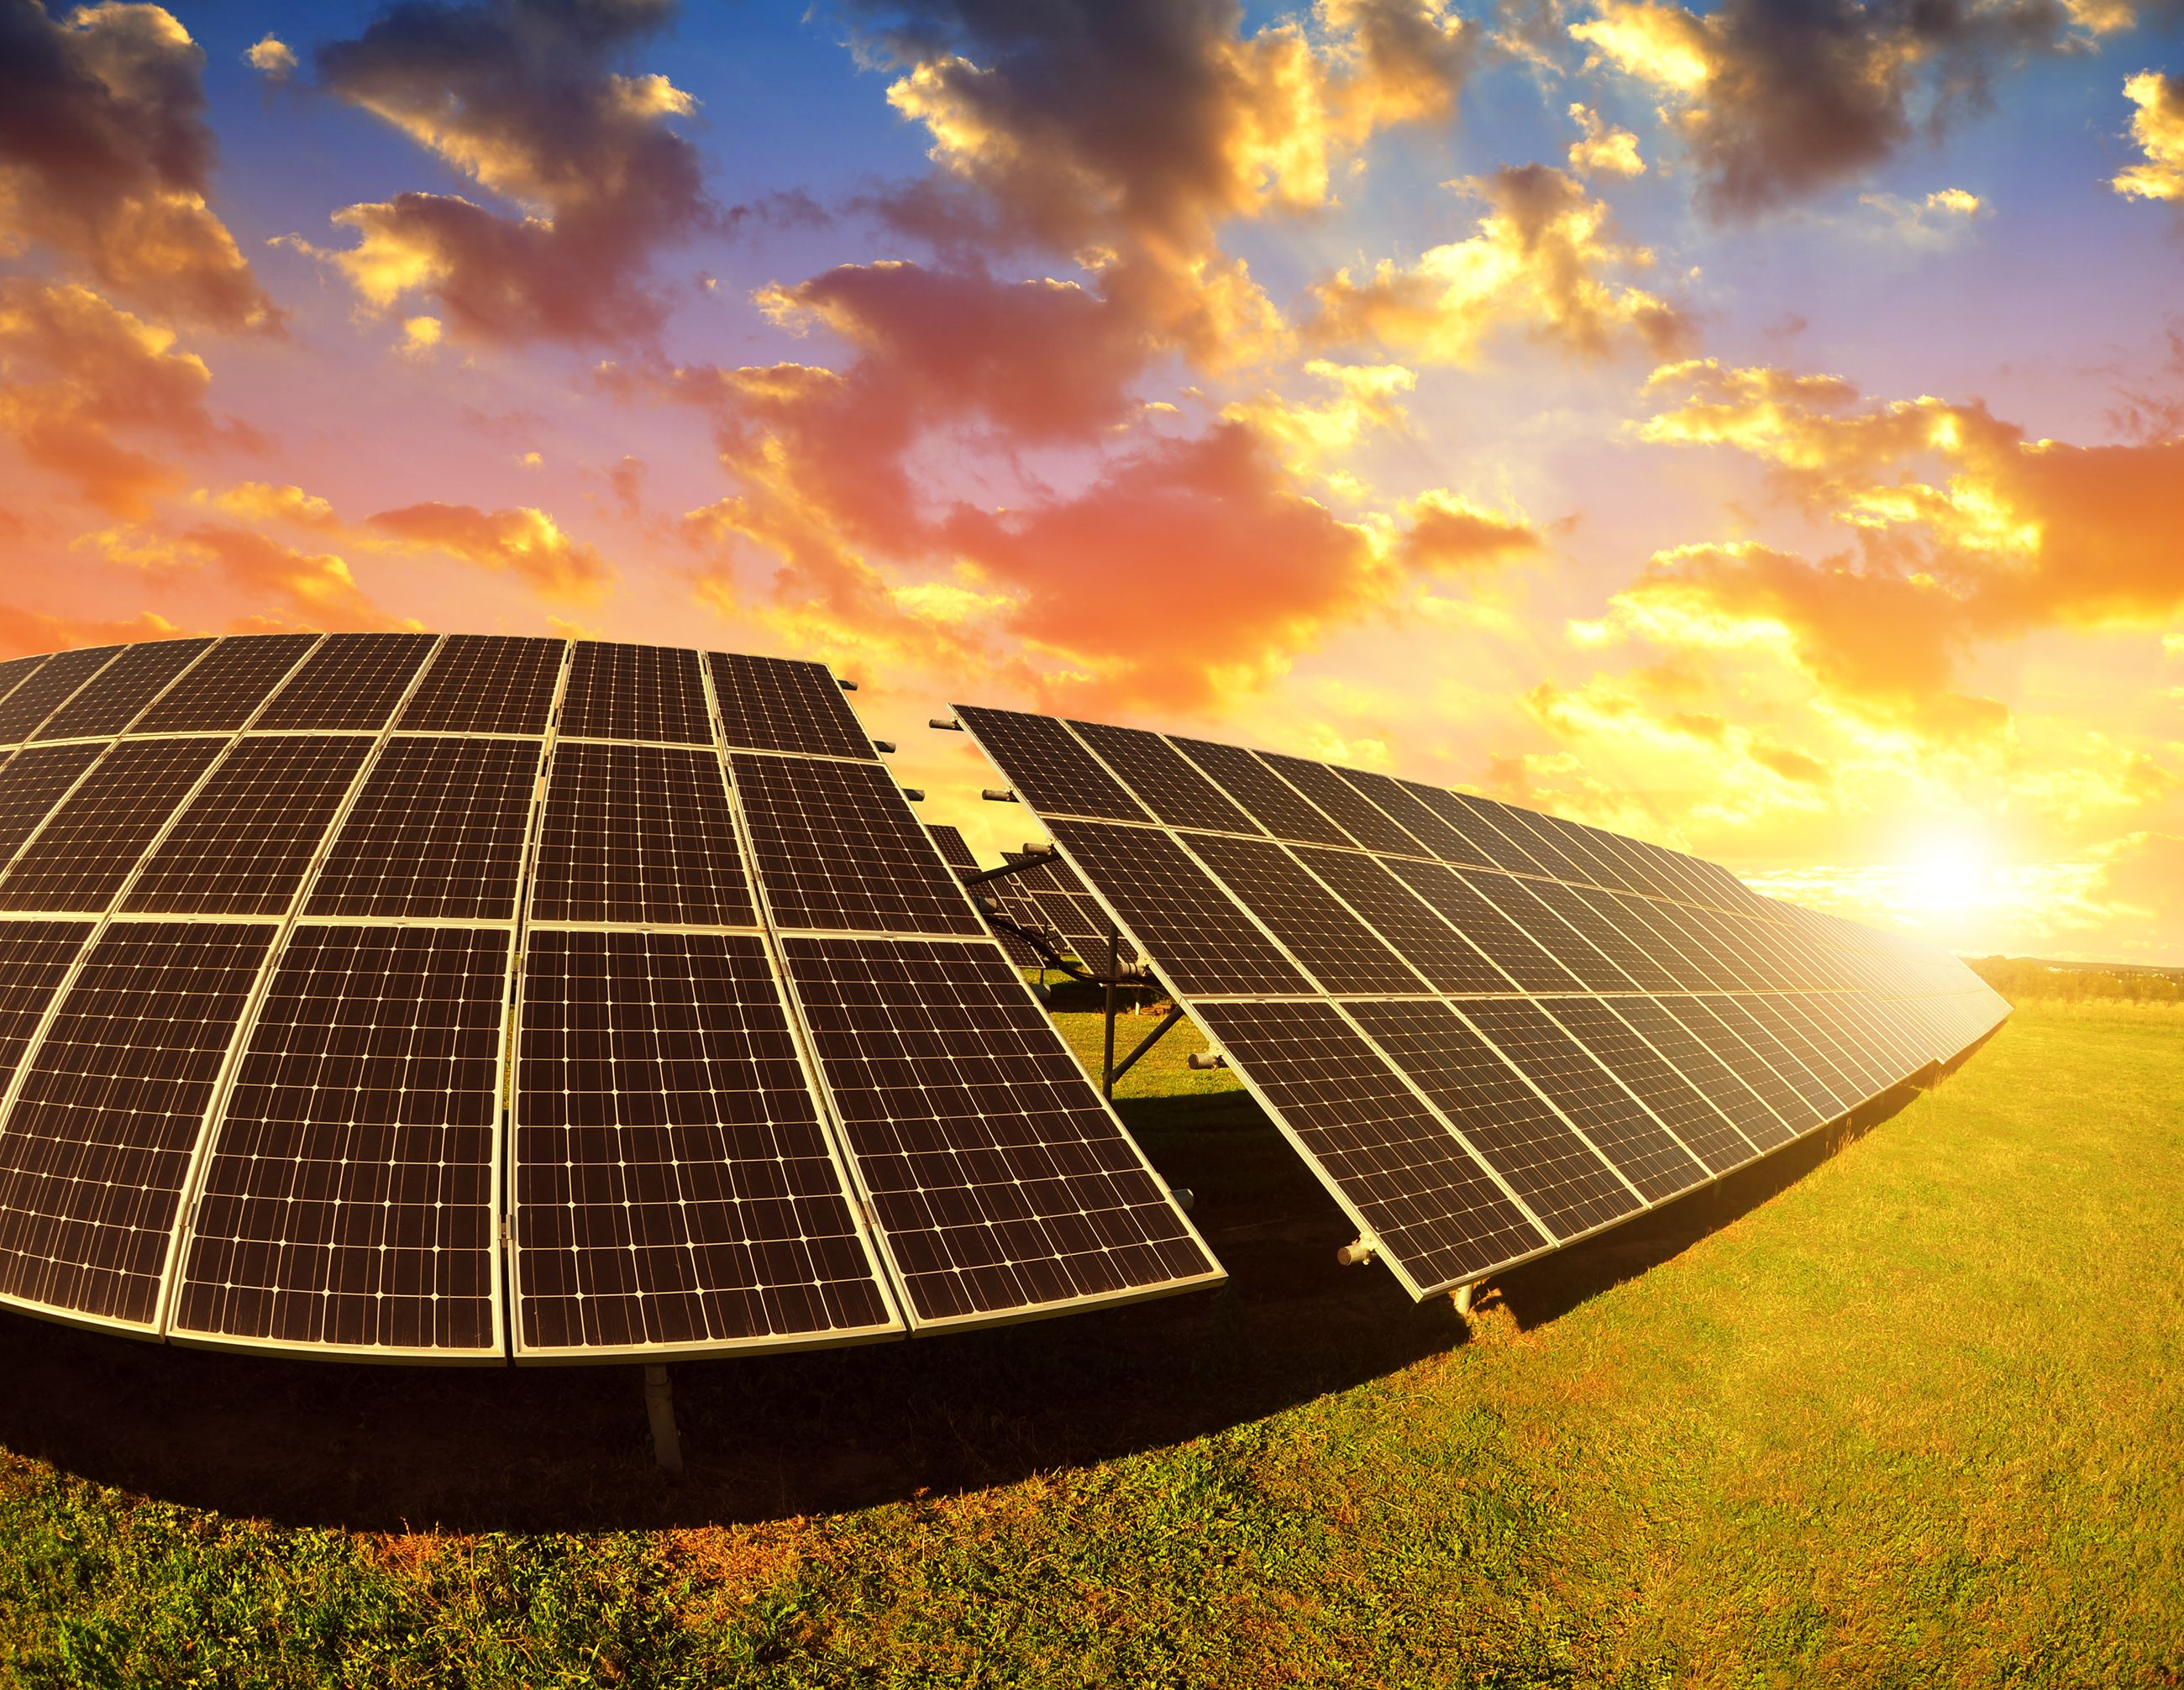 Get the best out of 6Kw Solar System Brisbane | Solar panels, Solar, Best solar  panels